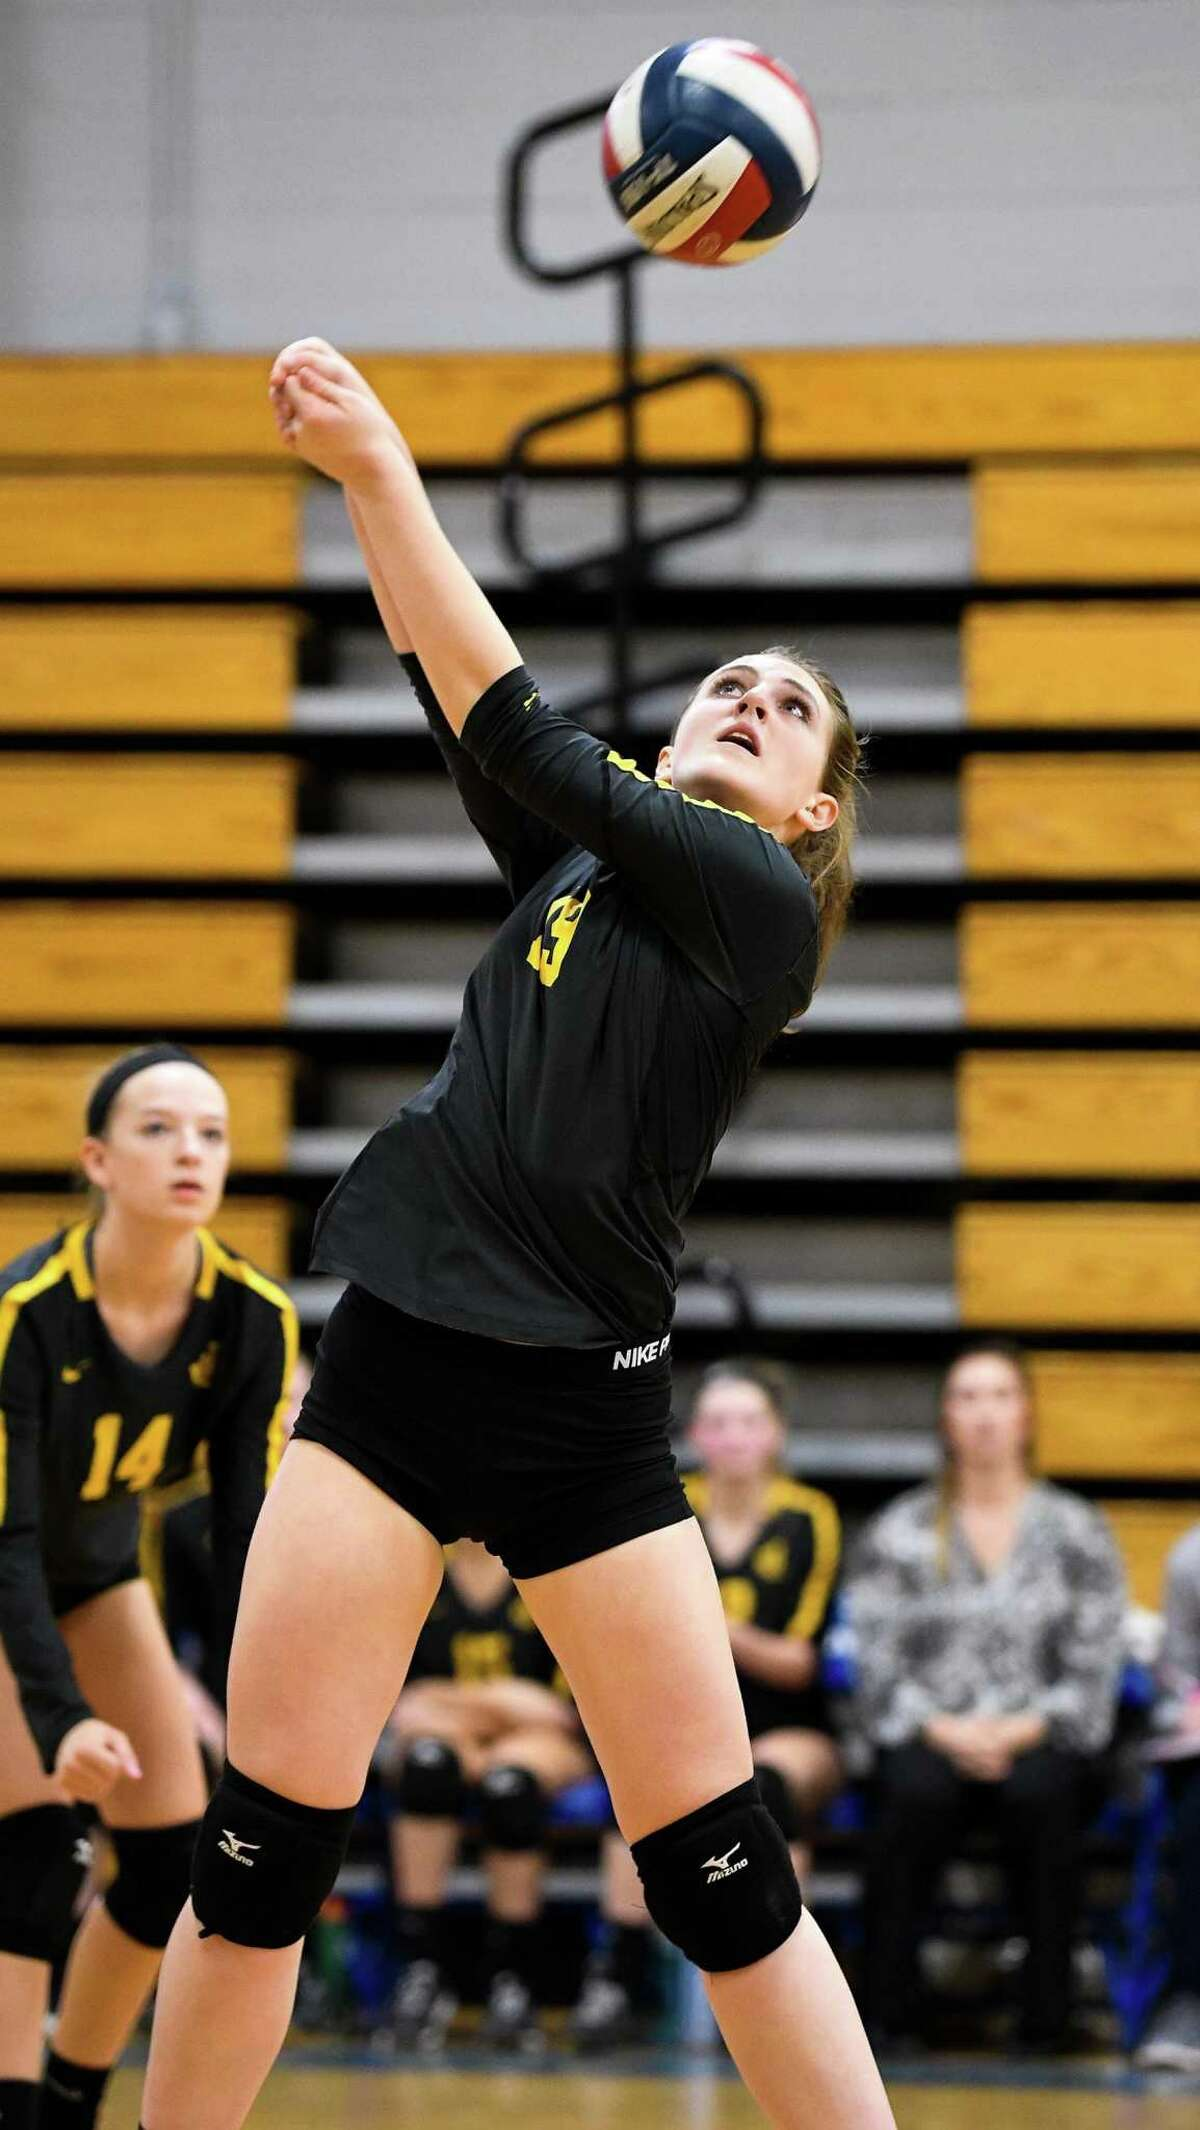 Jonathan Law's Maddie Lula will bring her versatile play to the court when the Lady Lawmen begin the 2019 campaign with a visit to Amistad Academy on Sept. 12.